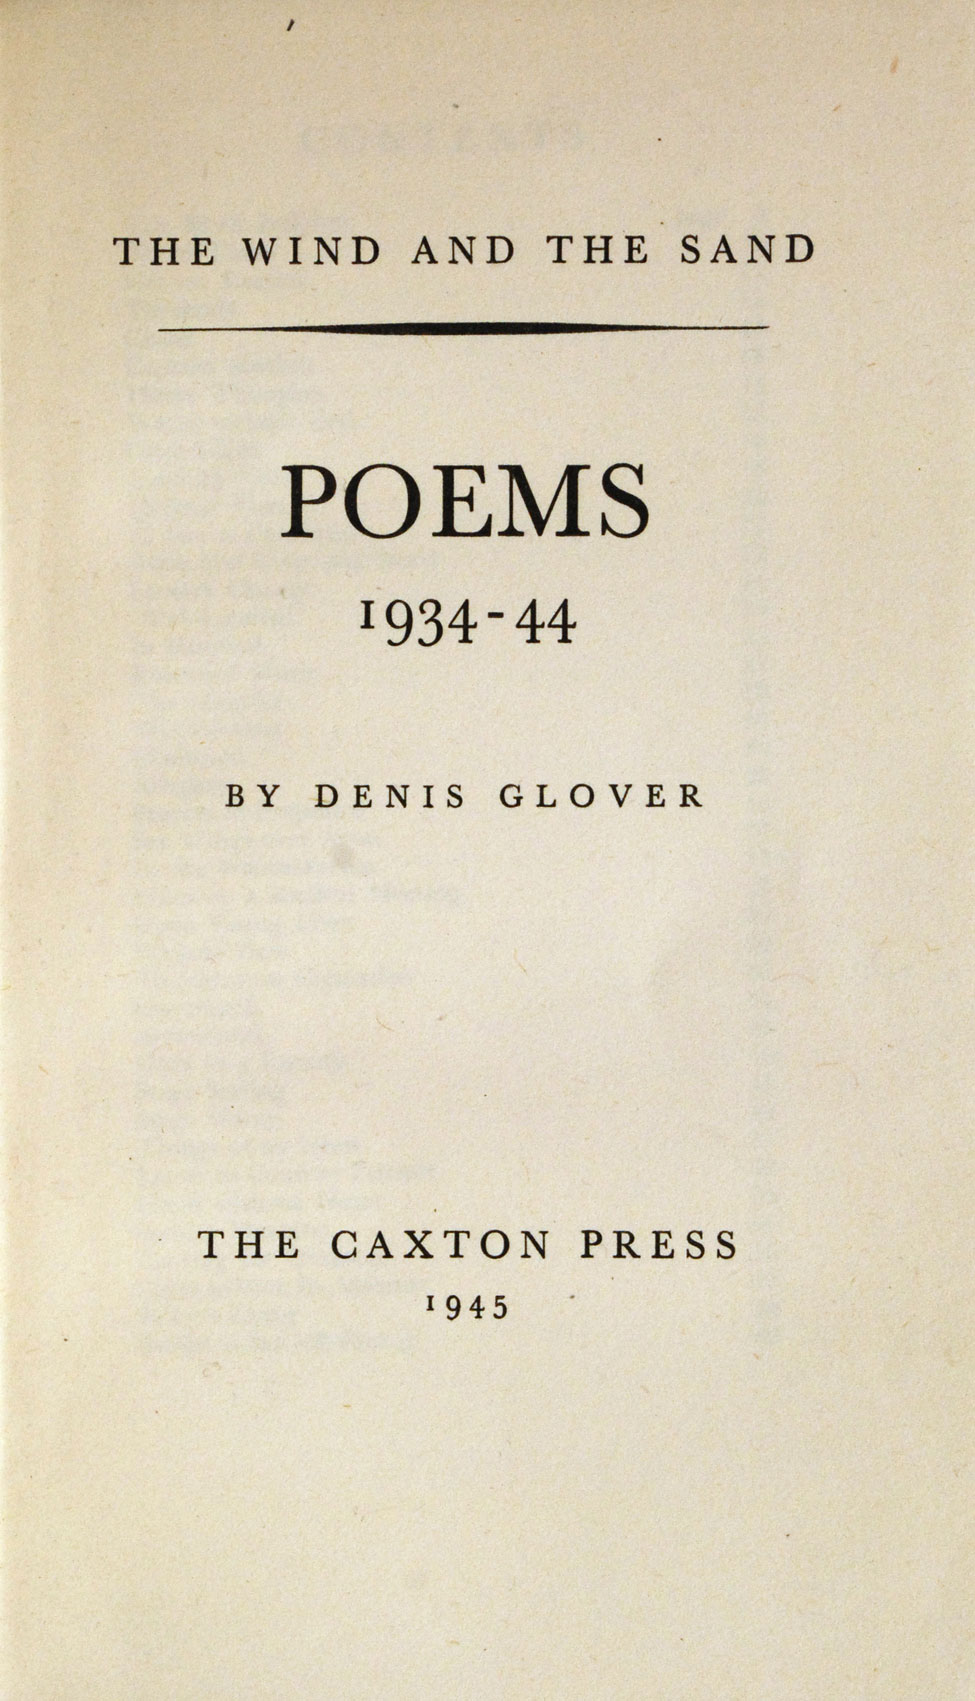 Denis Glover. The Wind and the Sand. <i>Christchurch: The Caxton Press, 1945.</i>